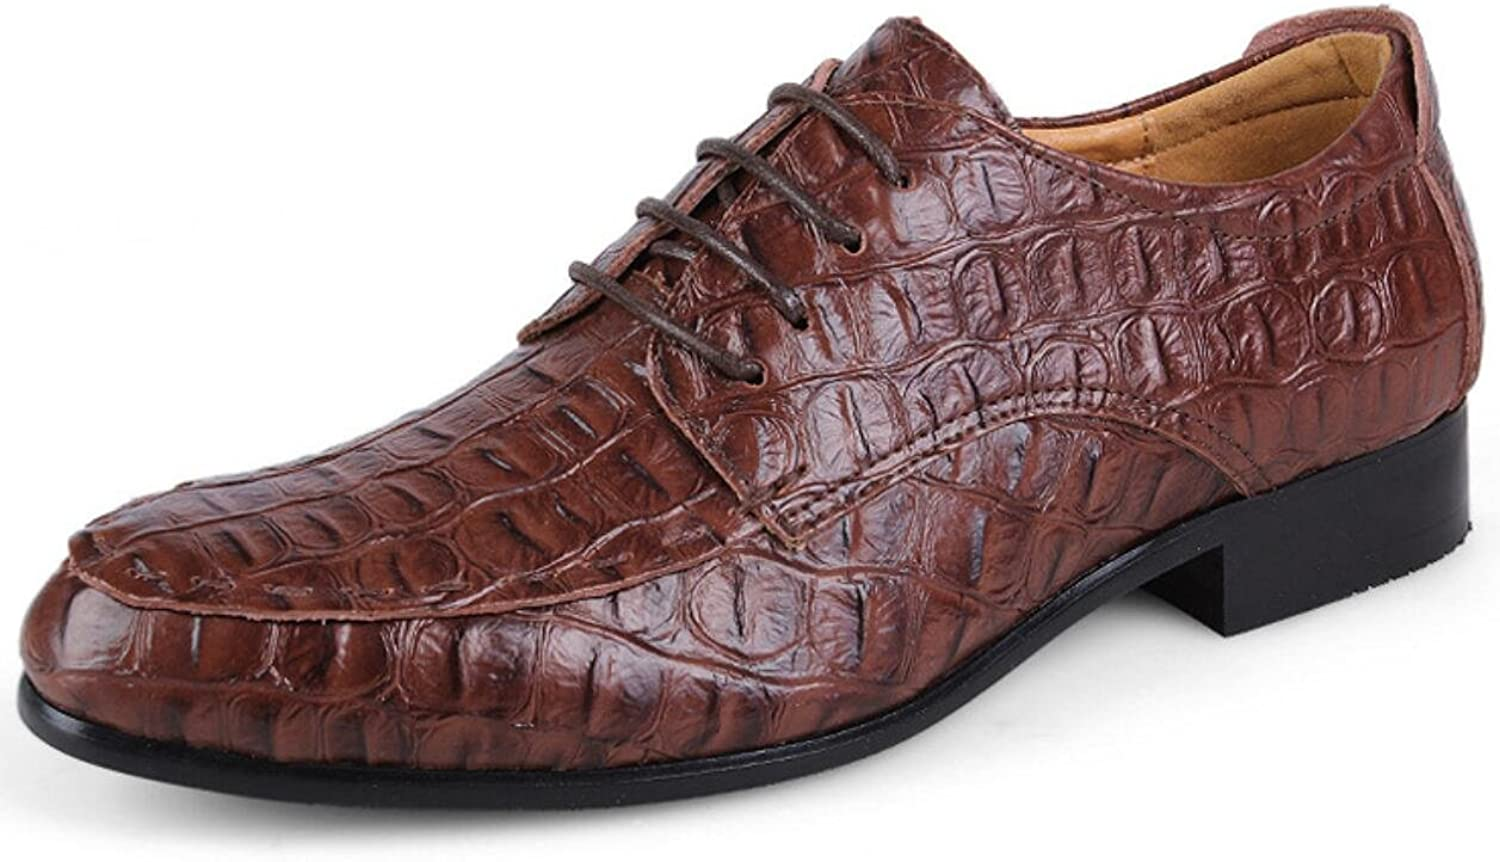 XWZG Men'S Derby Lace-Up shoes Classic Business shoes Made Of Leather Large Size Crocodile Pattern Large Size